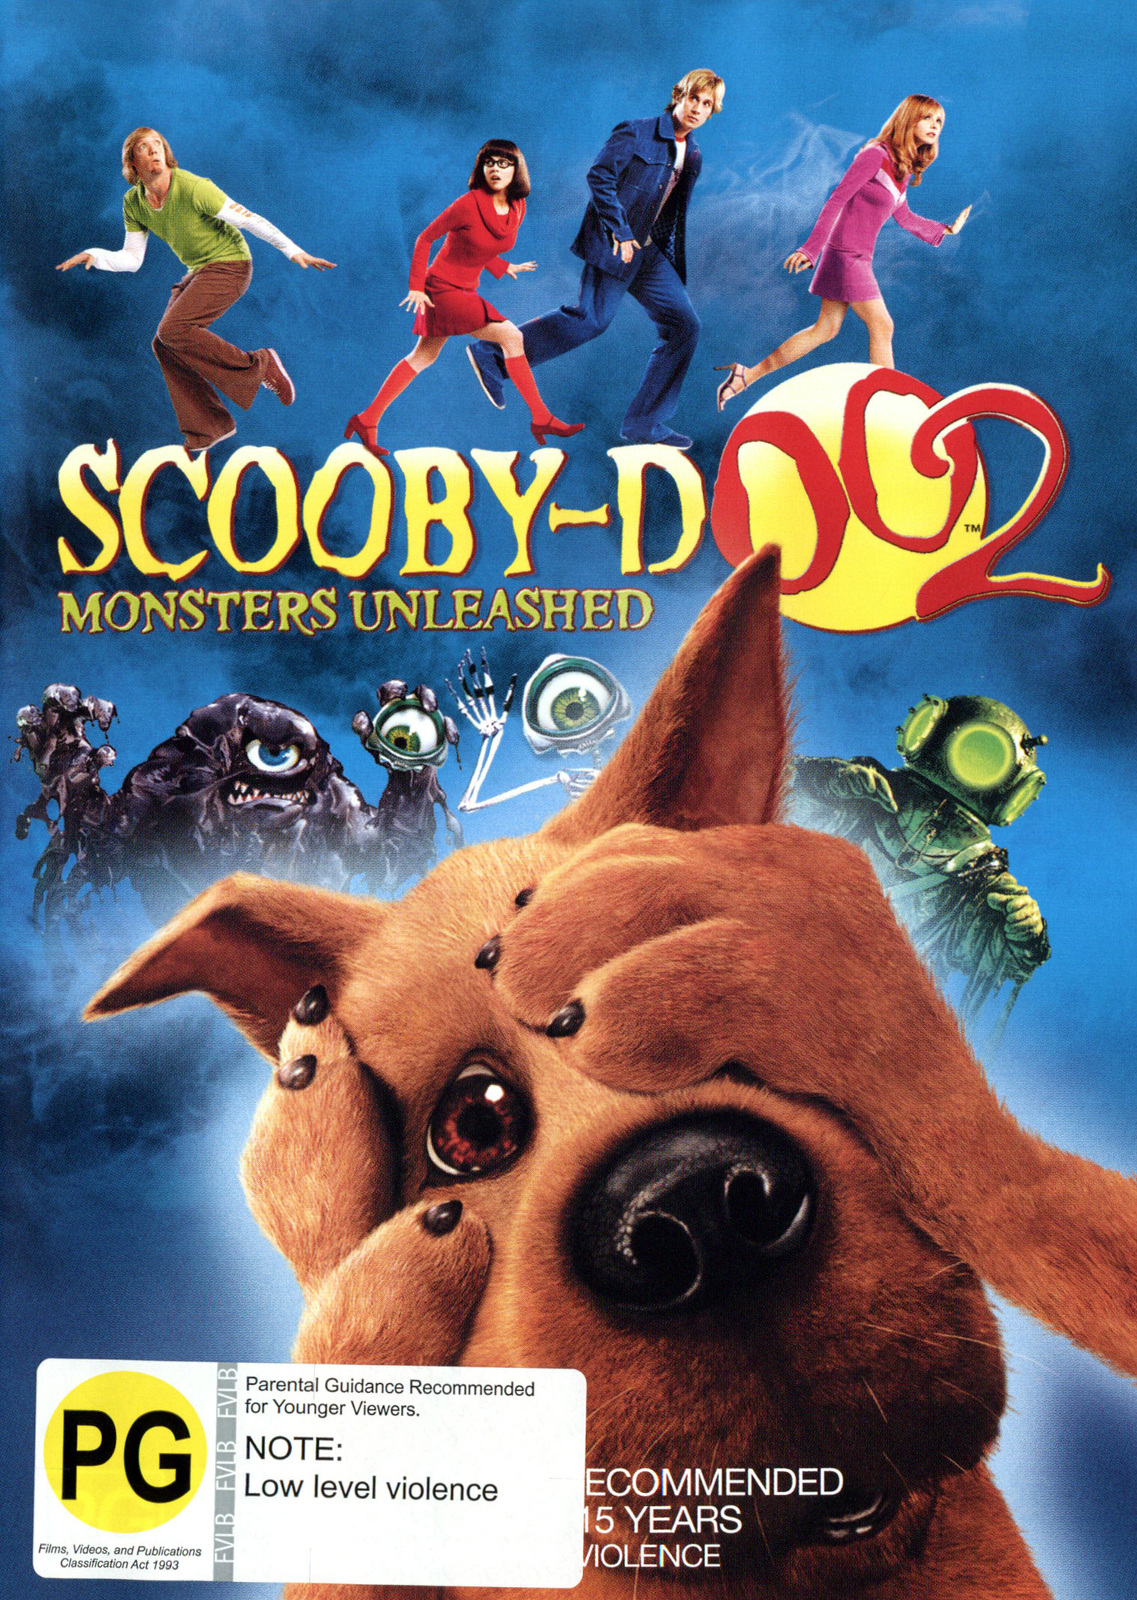 Scooby Doo 2 - Monsters Unleashed on DVD image